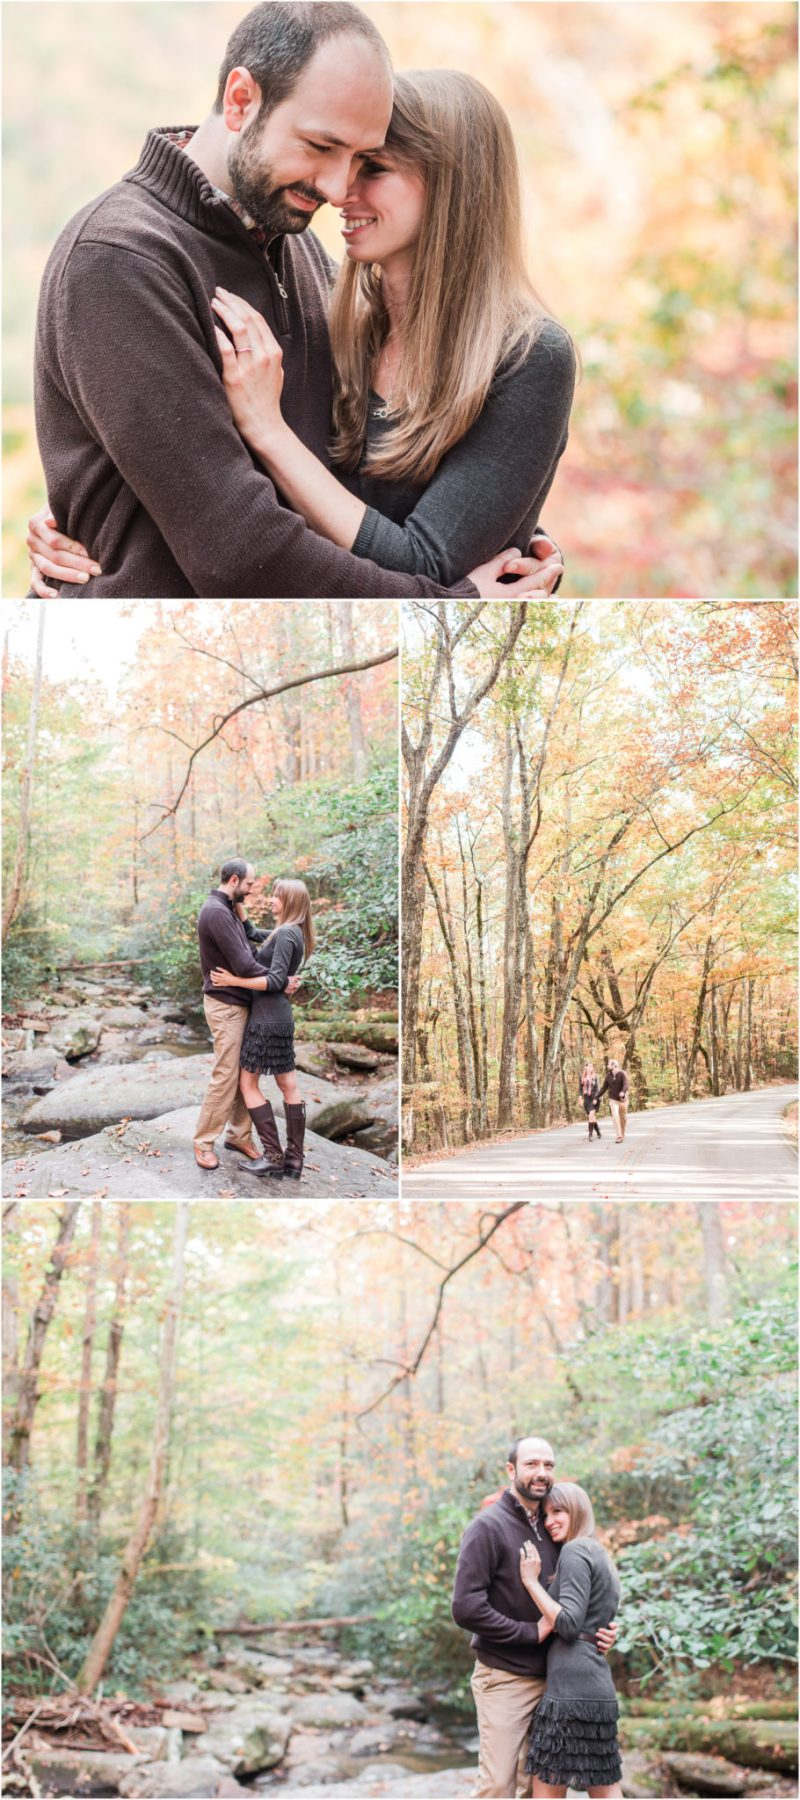 Fall Table Rock State Park Engagement Session in Pickens, South Carolina